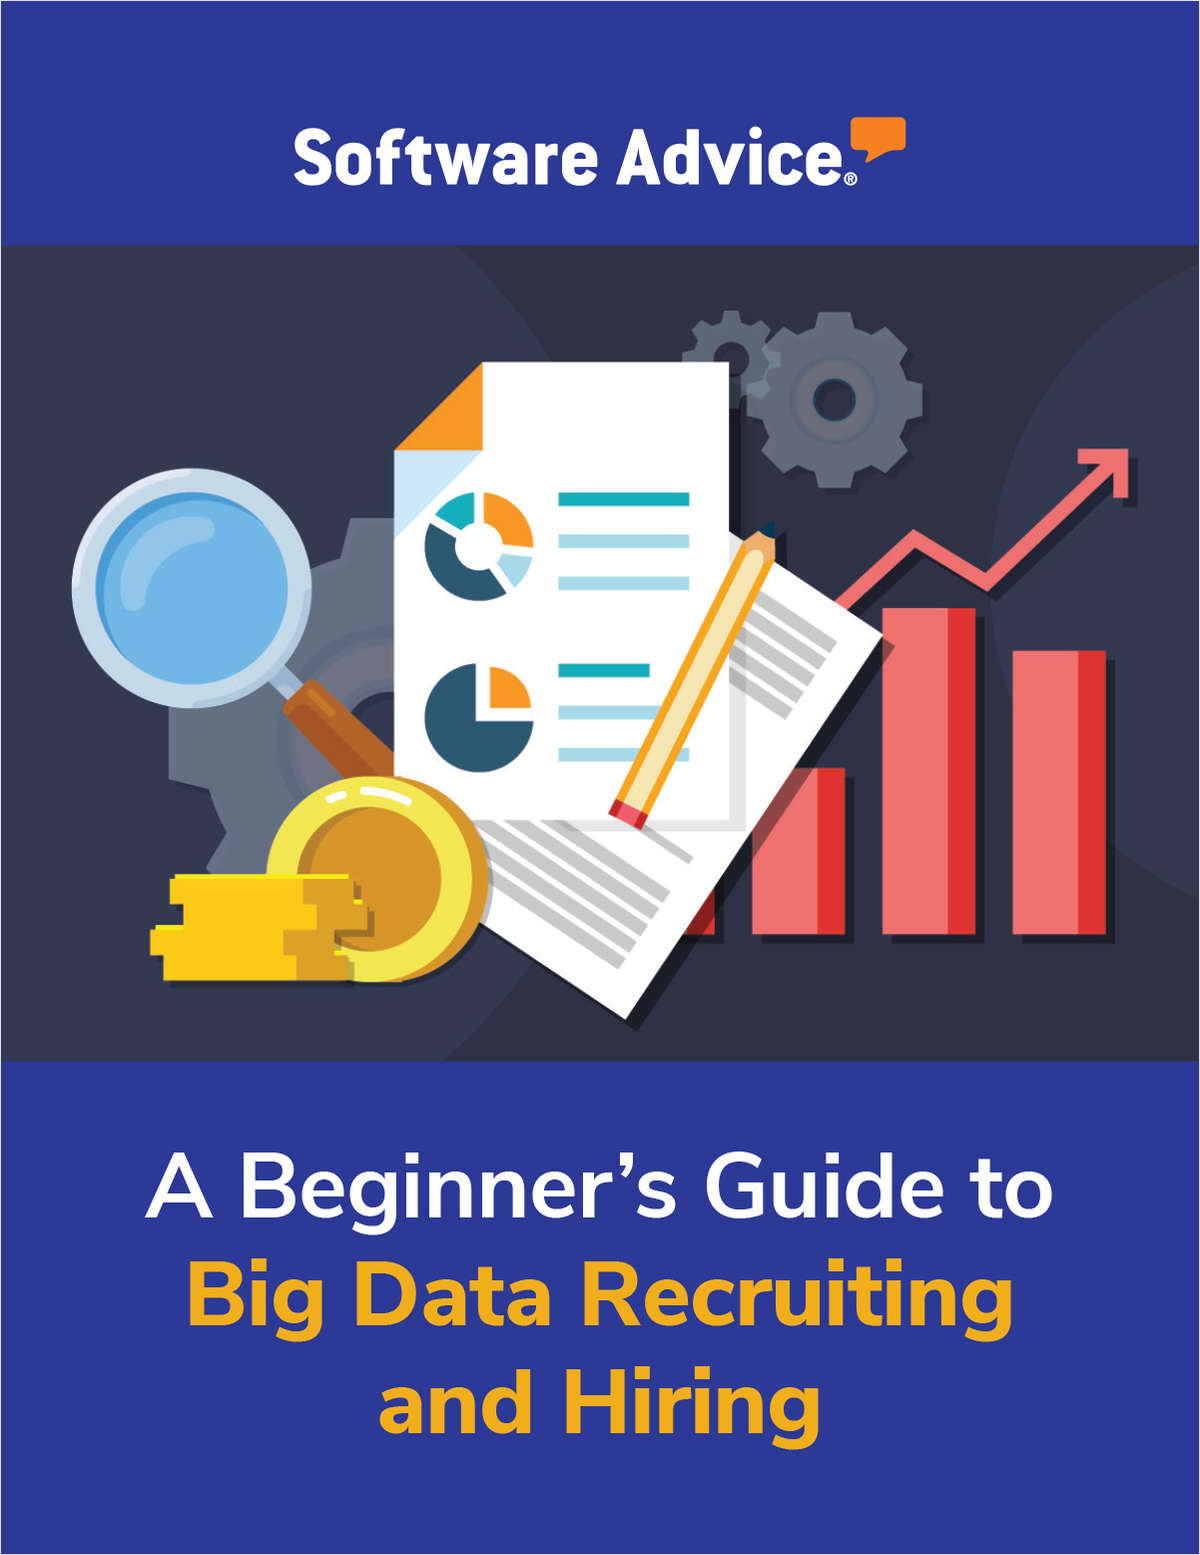 A Beginner's Guide to Big Data Recruiting and Hiring